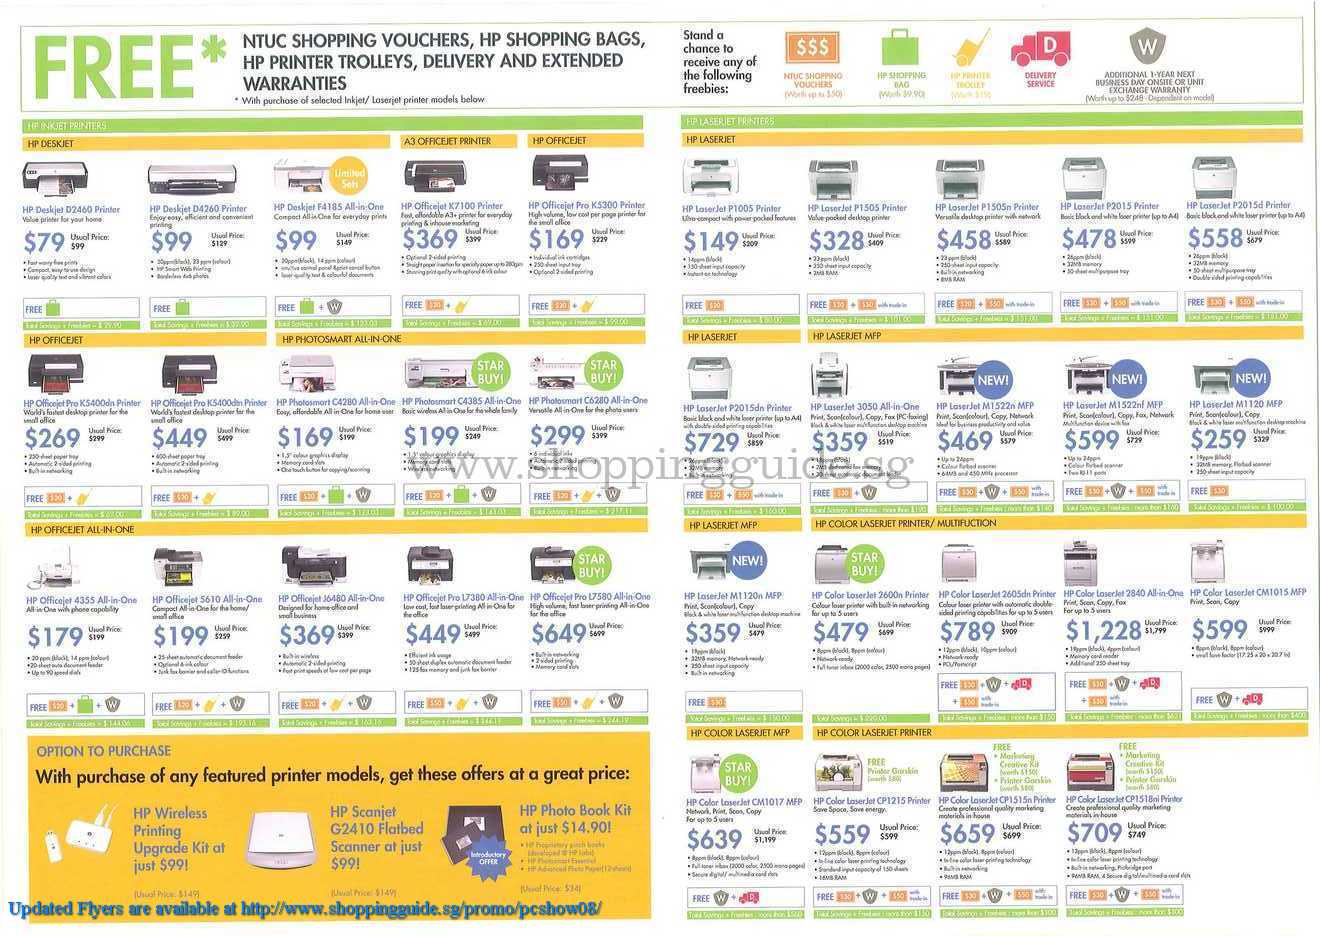 PC Show 2008 price list image brochure of HP Printers ShoppingGuide.SG-PcShow08-092